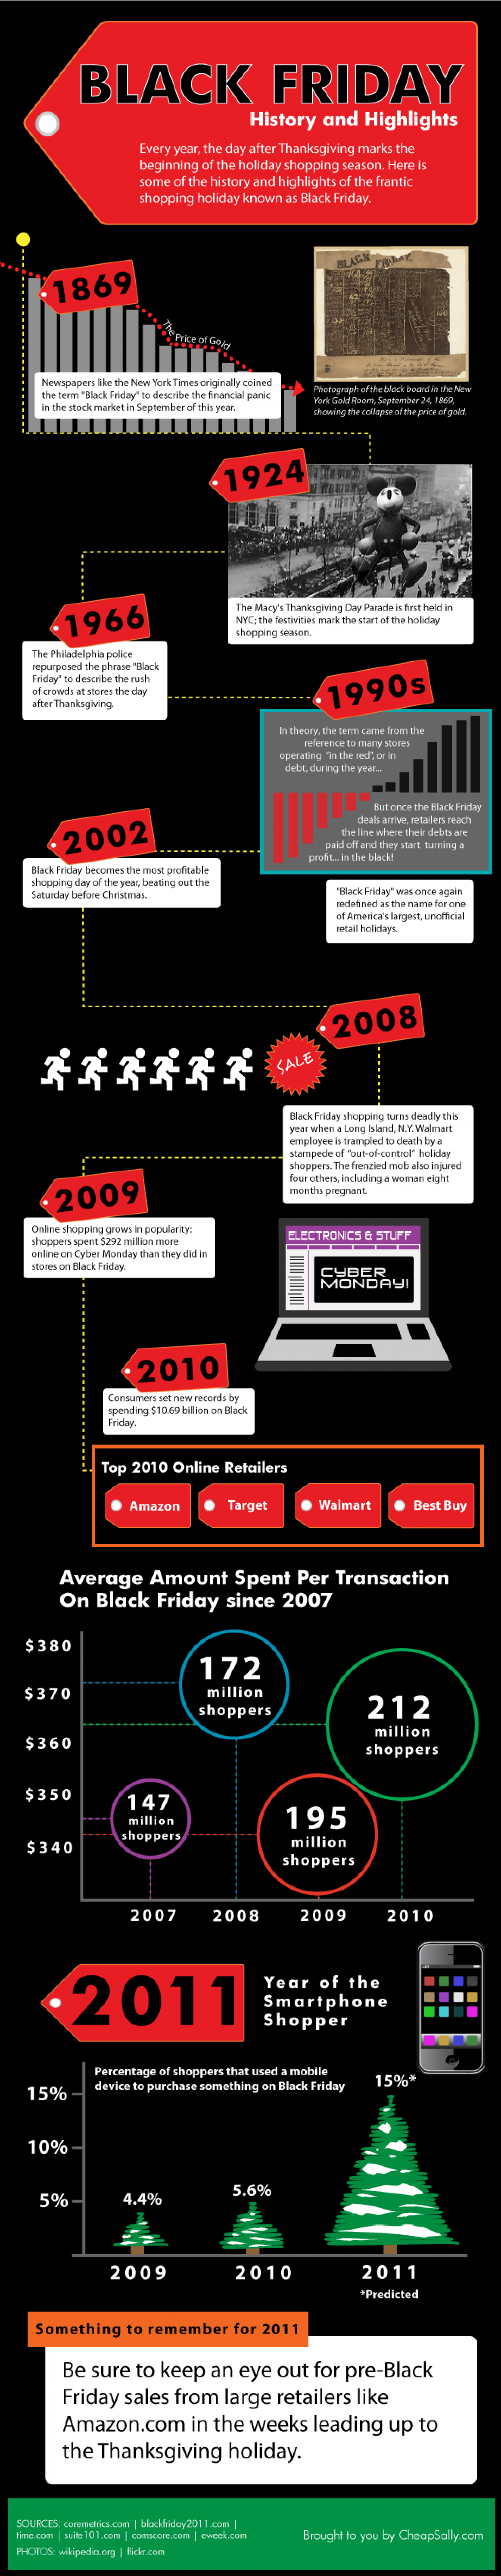 Black Friday: History and Highlights Infographic